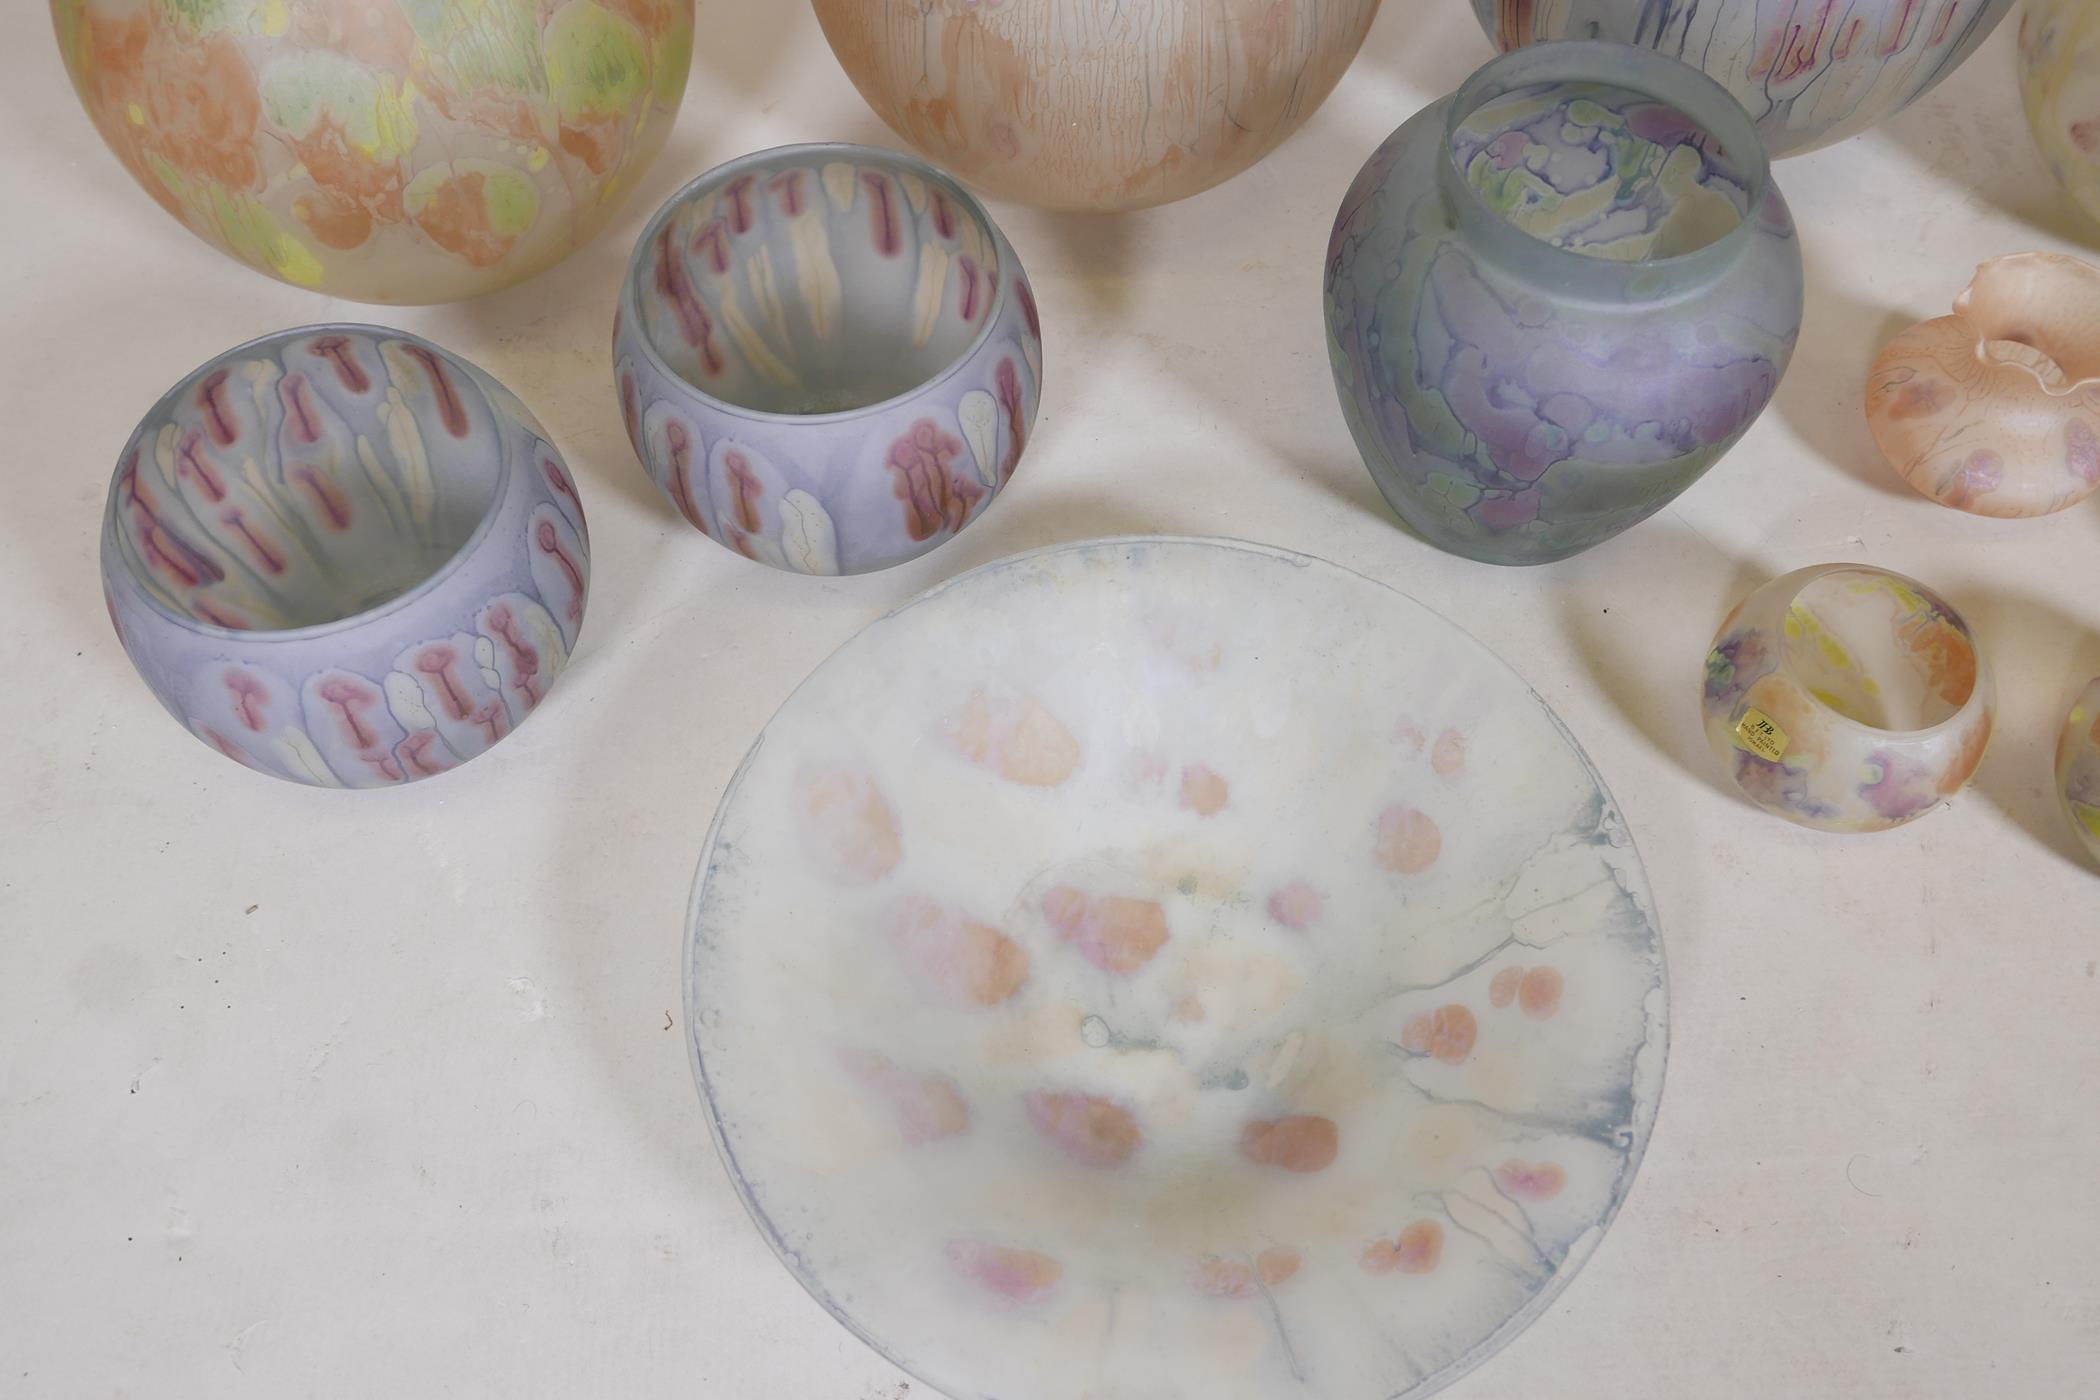 A quantity of Israeli hand painted studio glass to include lamp shades, vases, bowls and dishes, - Image 6 of 8